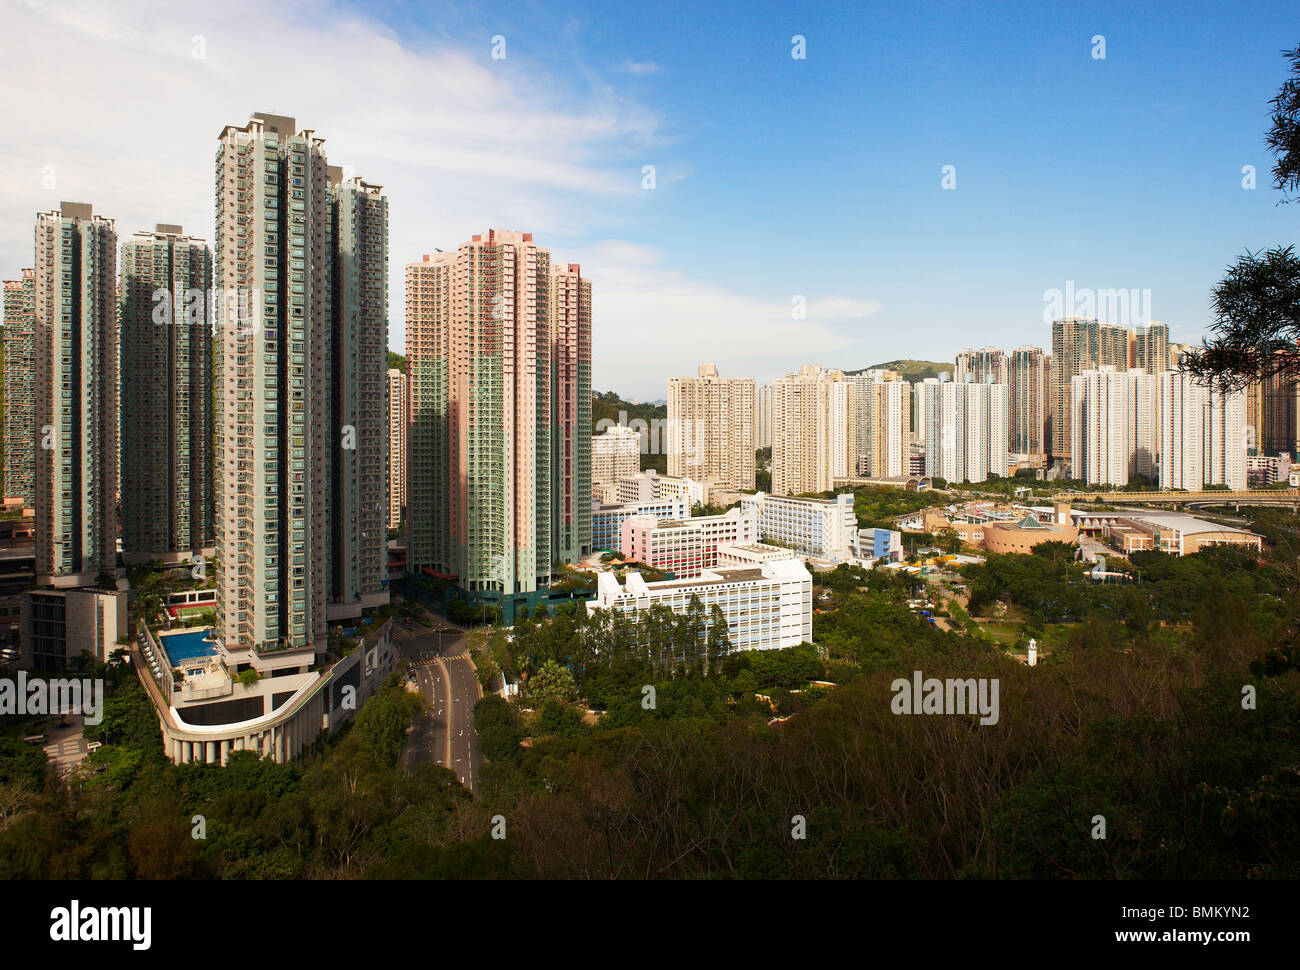 """High apartment buildings densely packed together, forming """"wall blocks"""" on the mountain side, providing shelter Stock Photo"""